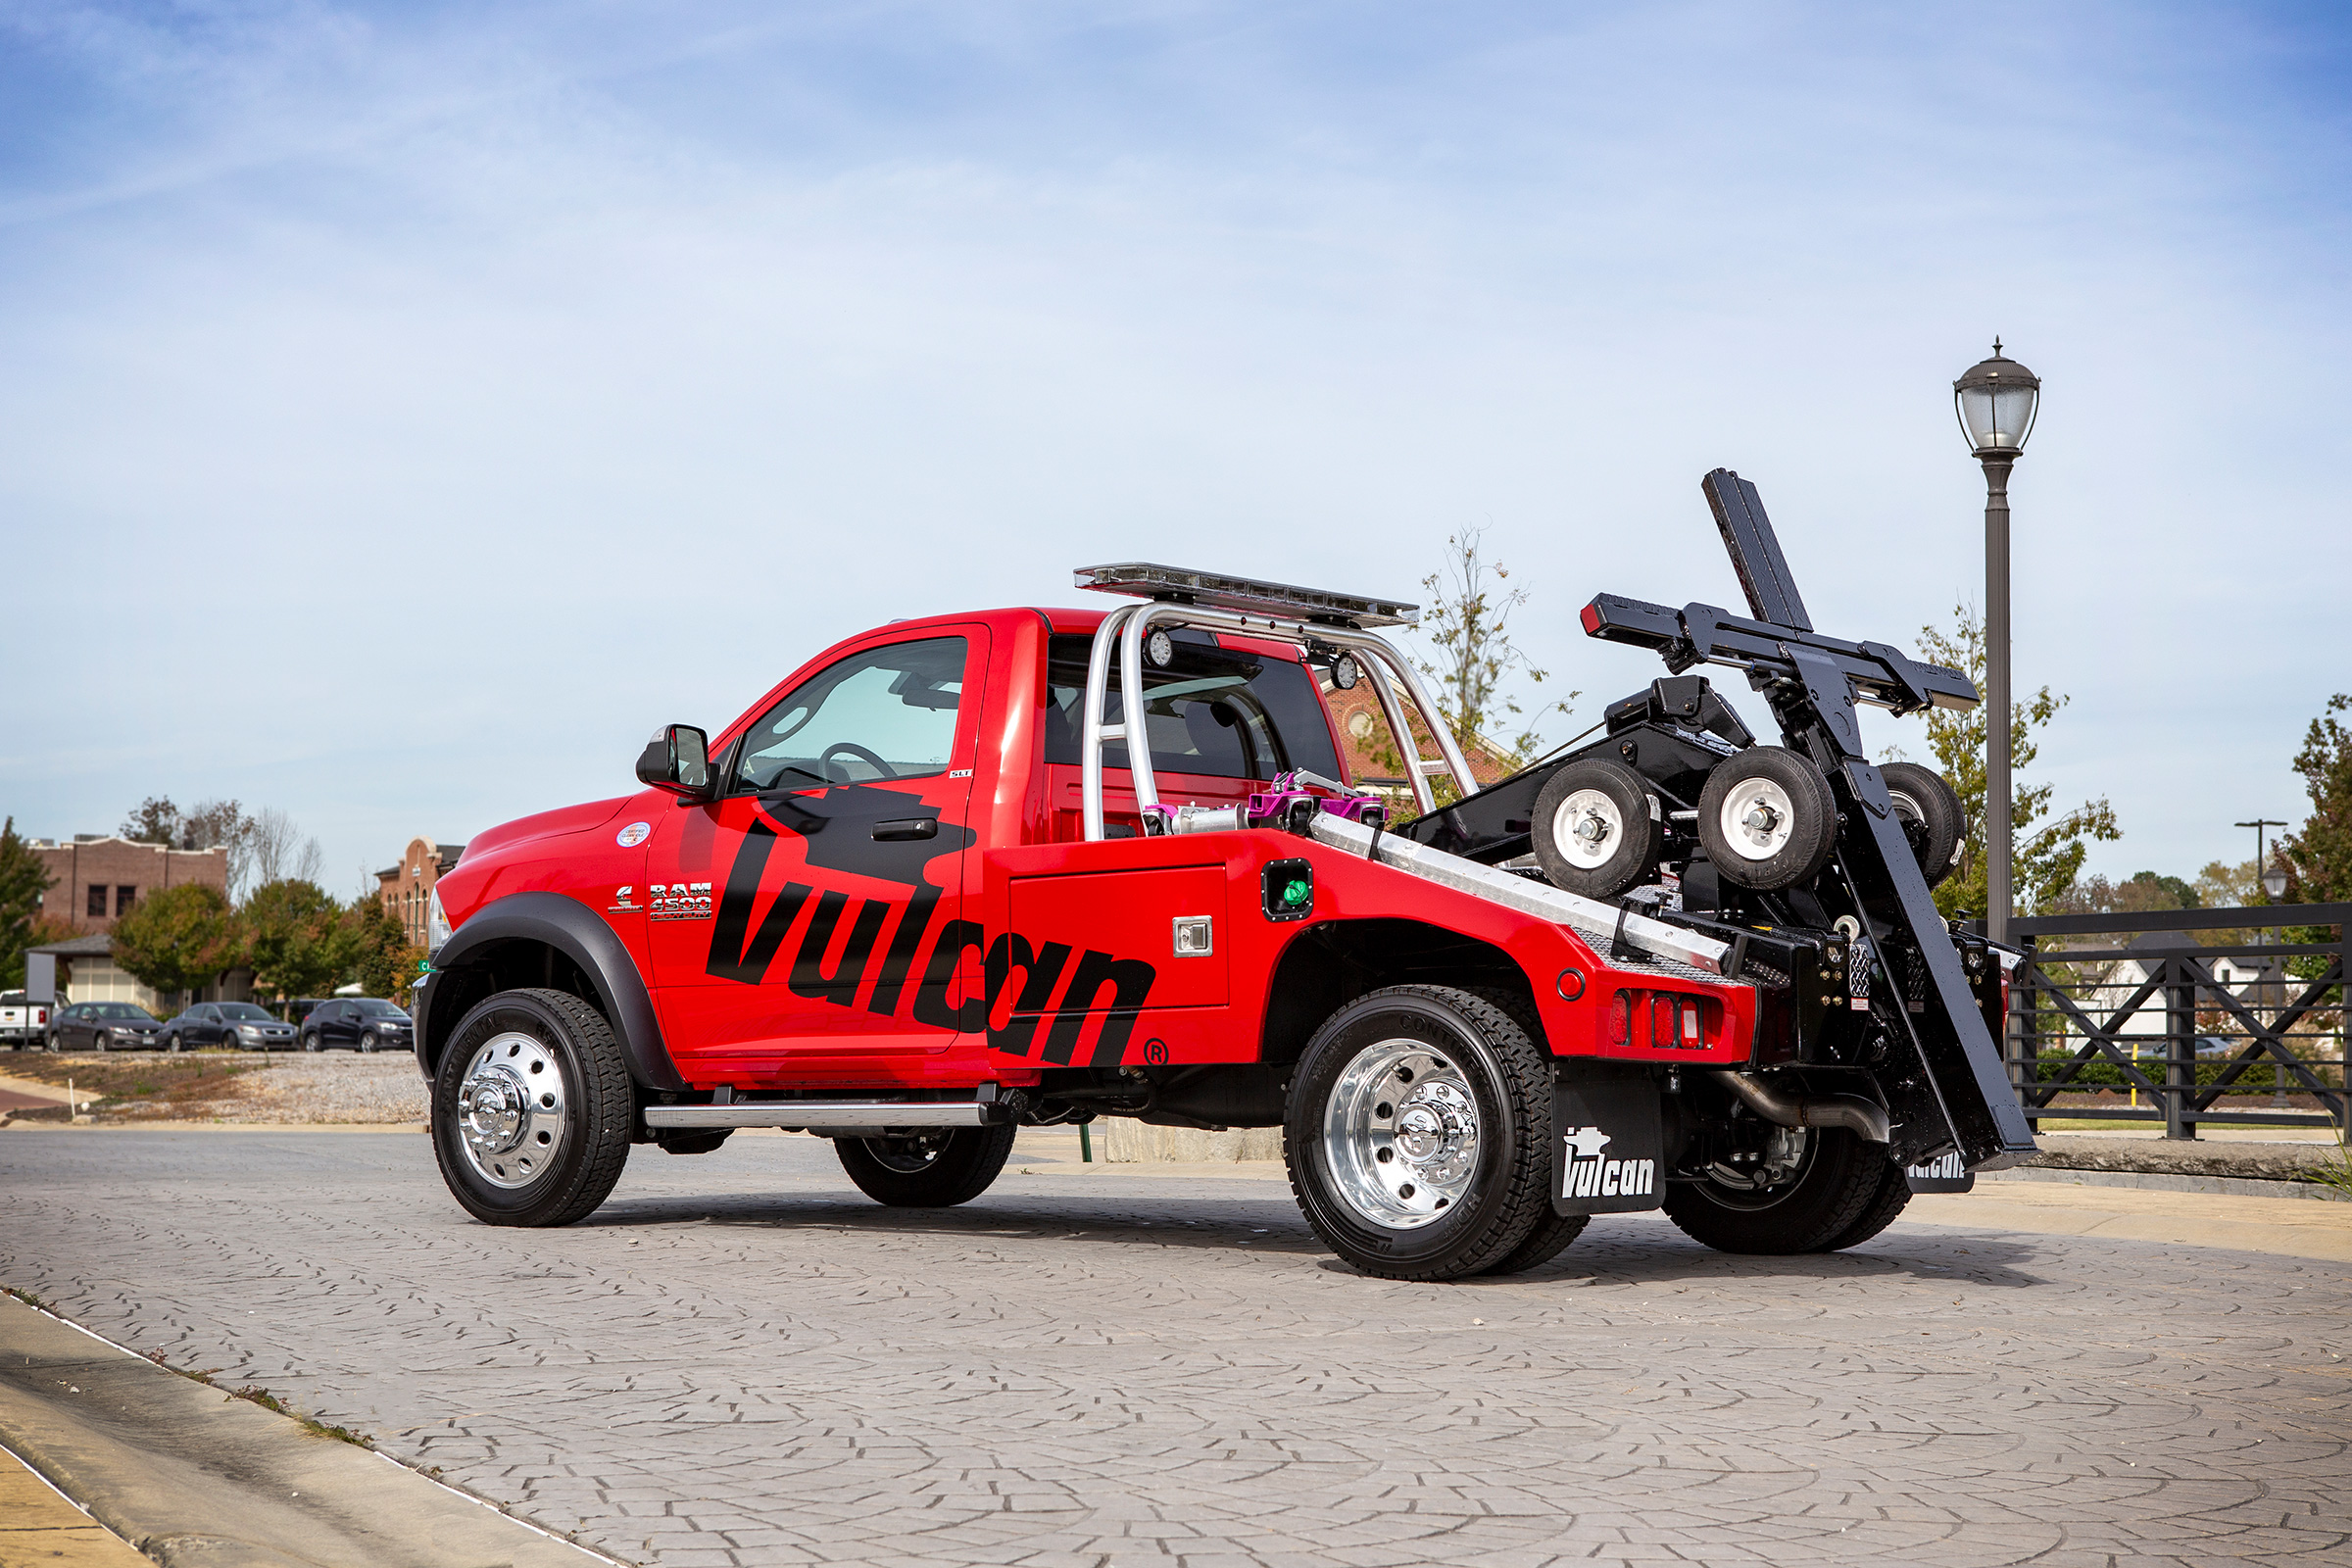 Vulcan® 810 Intruder™ Light-Duty Wrkr